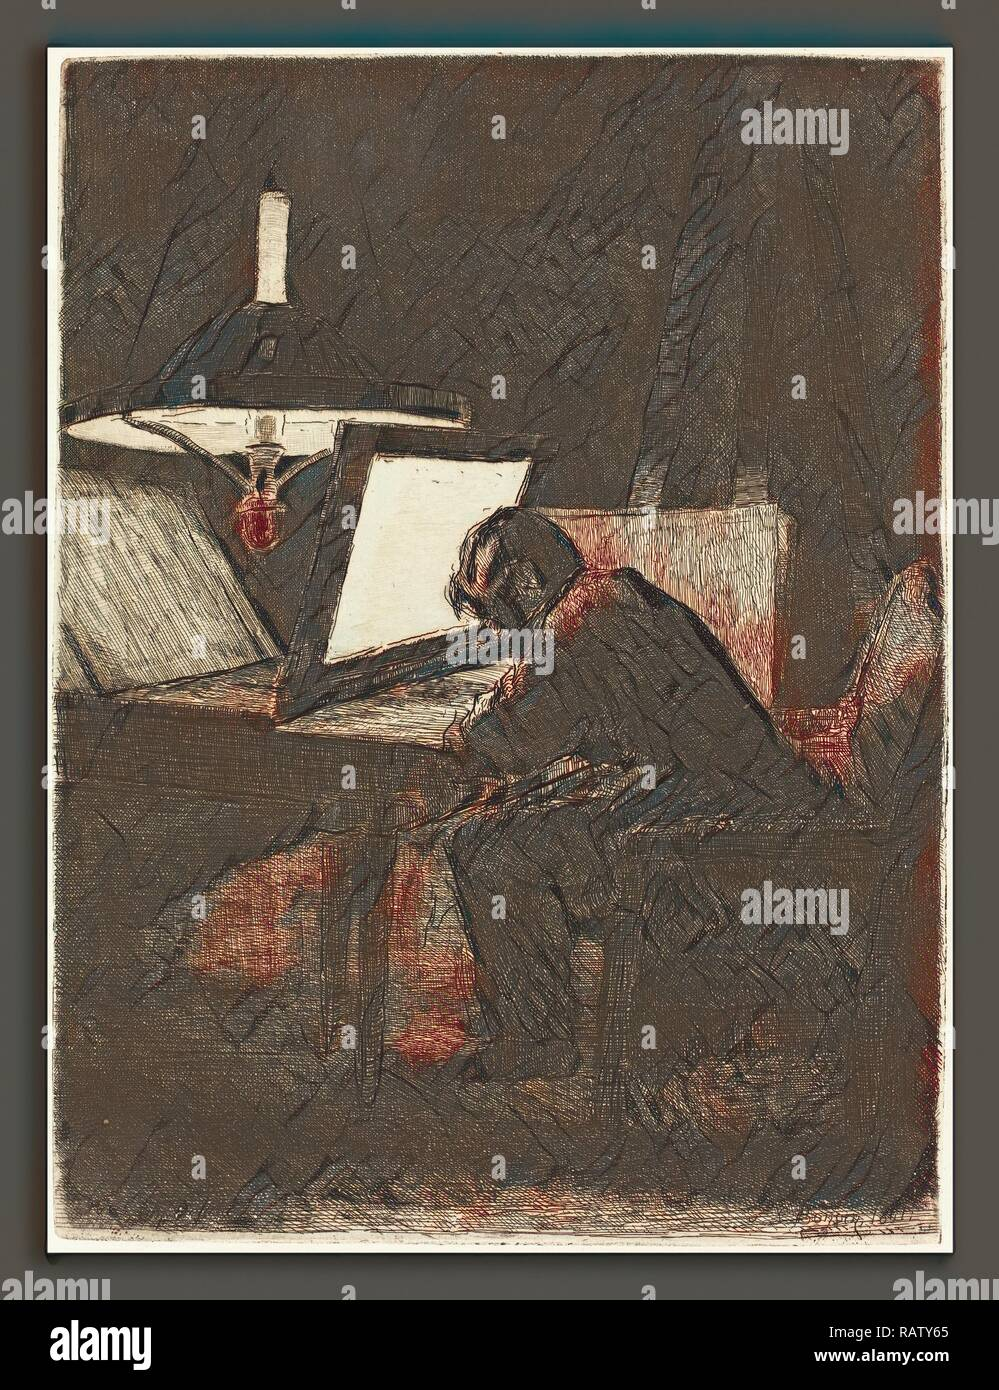 François Bonvin (French, 1817 - 1887), The Printmaker (Le Graveur), 1861, etching on laid paper. Reimagined - Stock Image